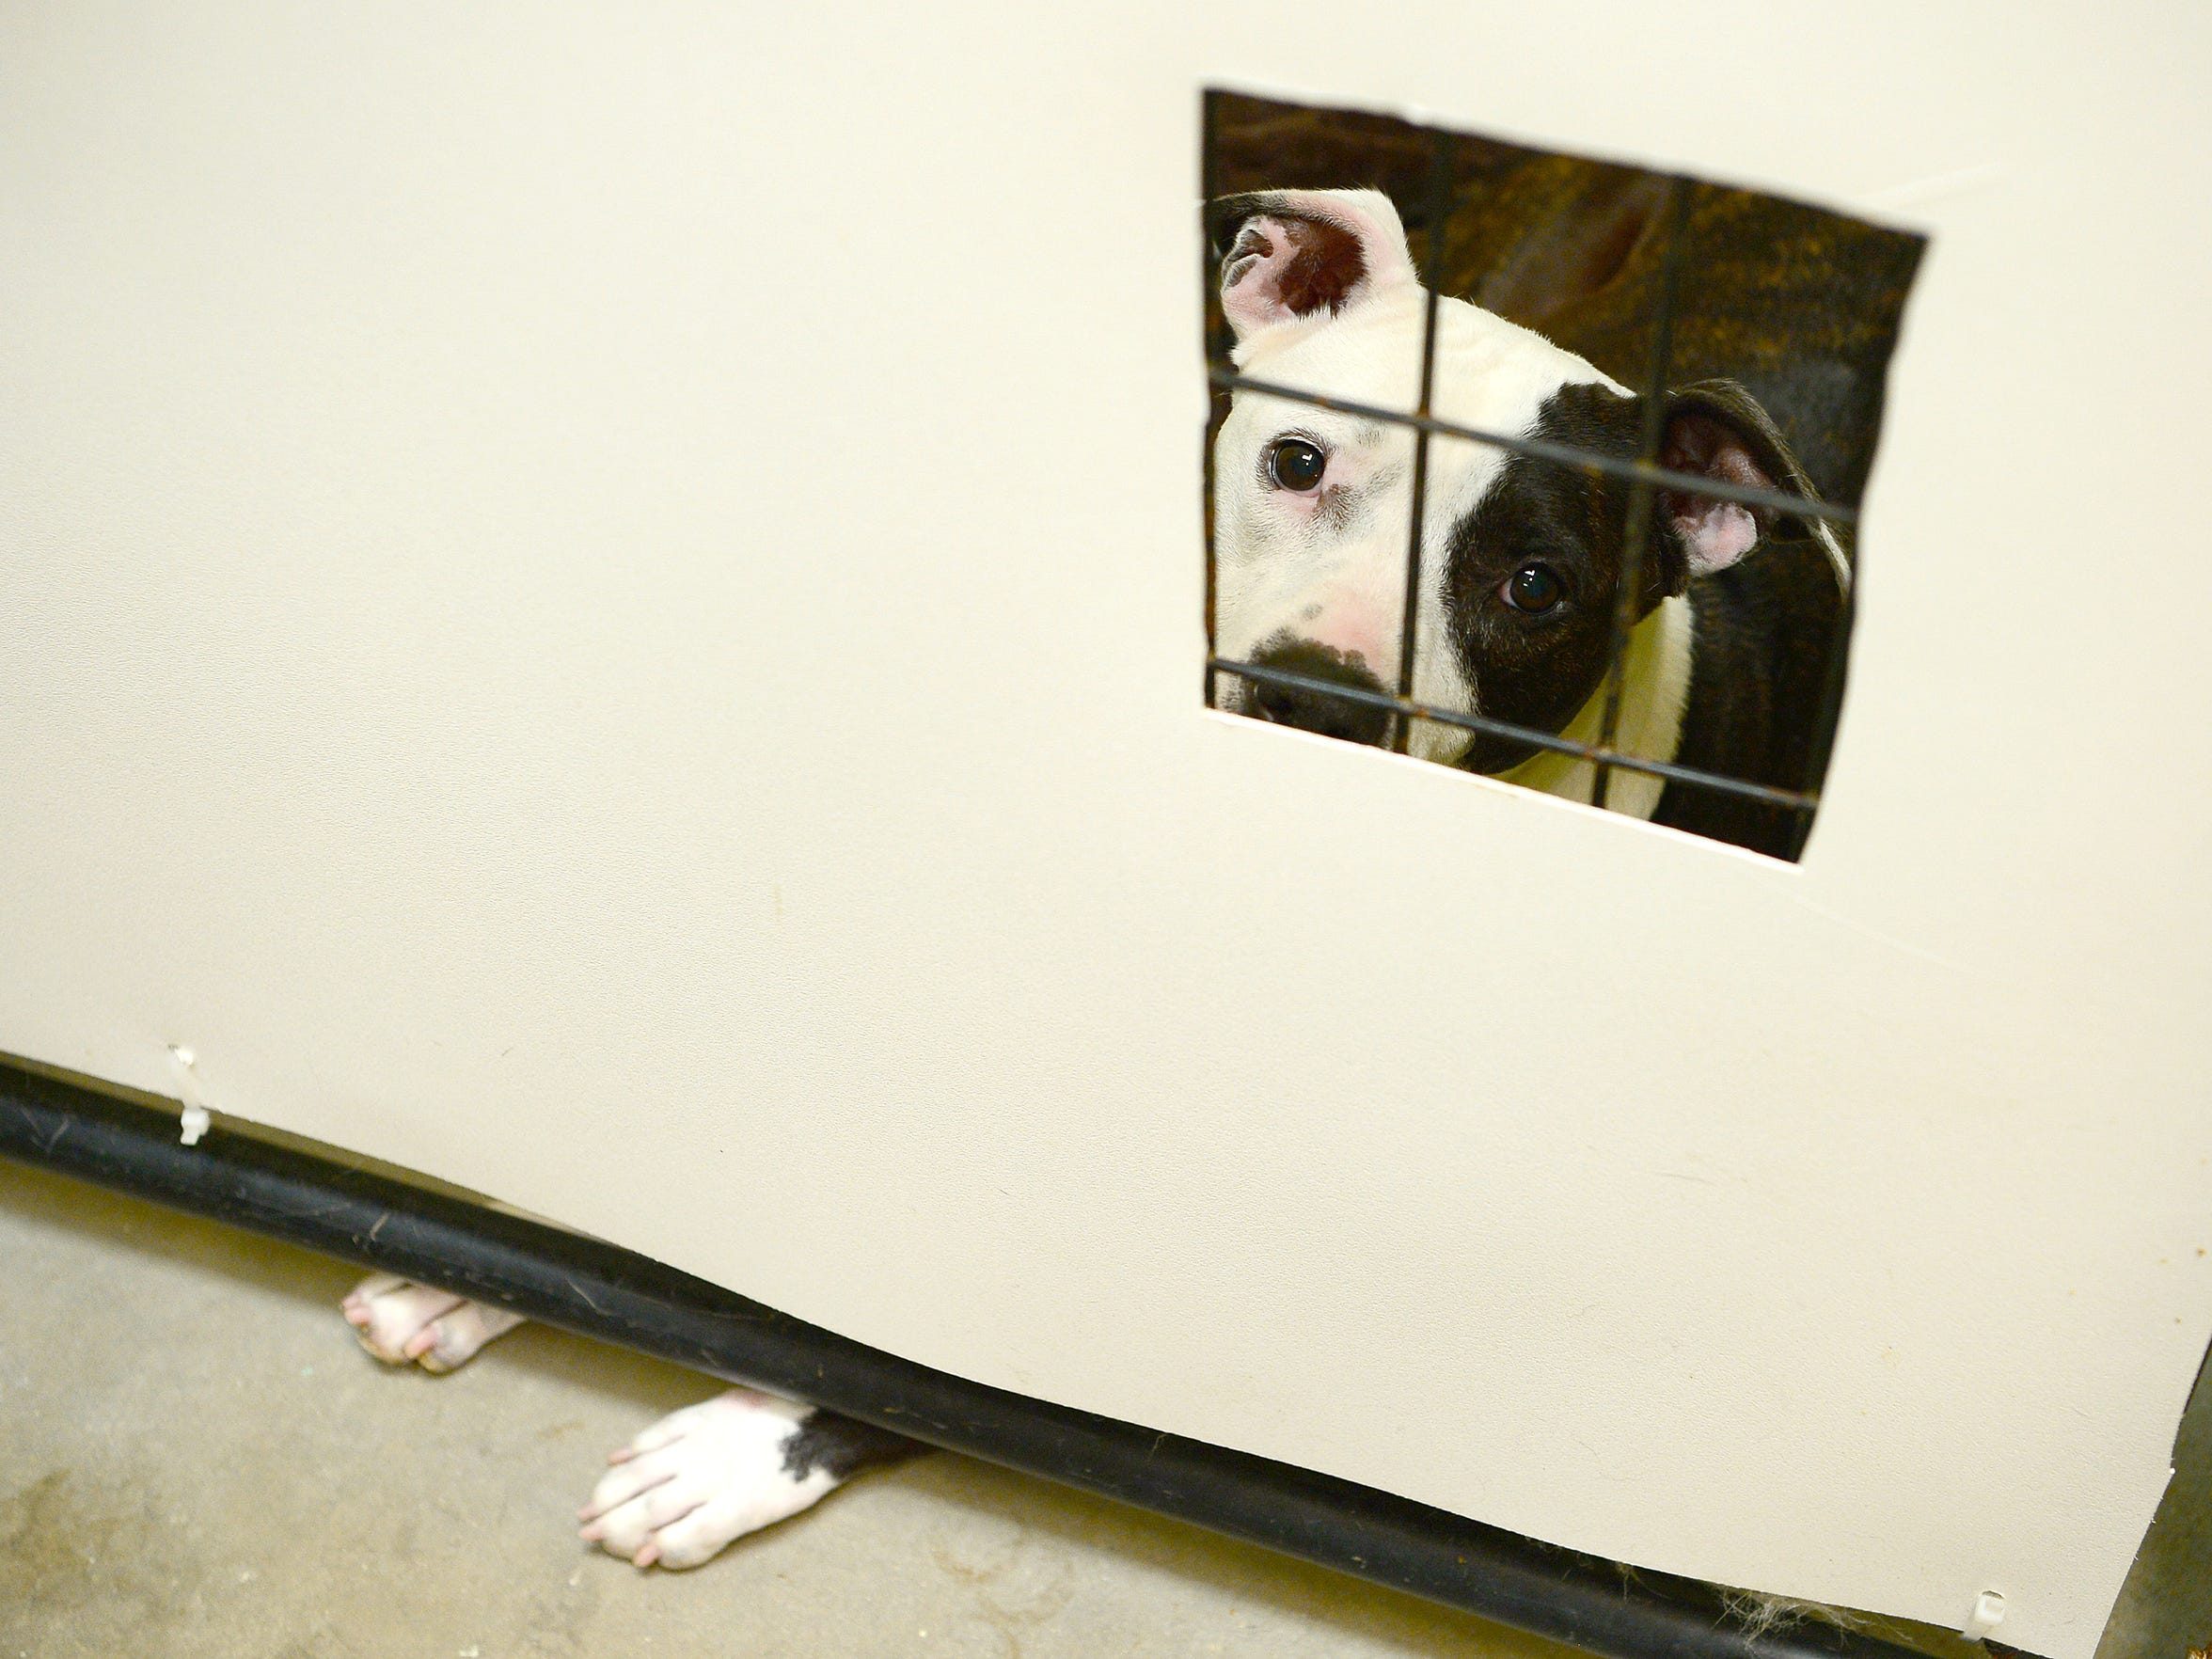 Dixie, a dog up for adoption, peers through a hole